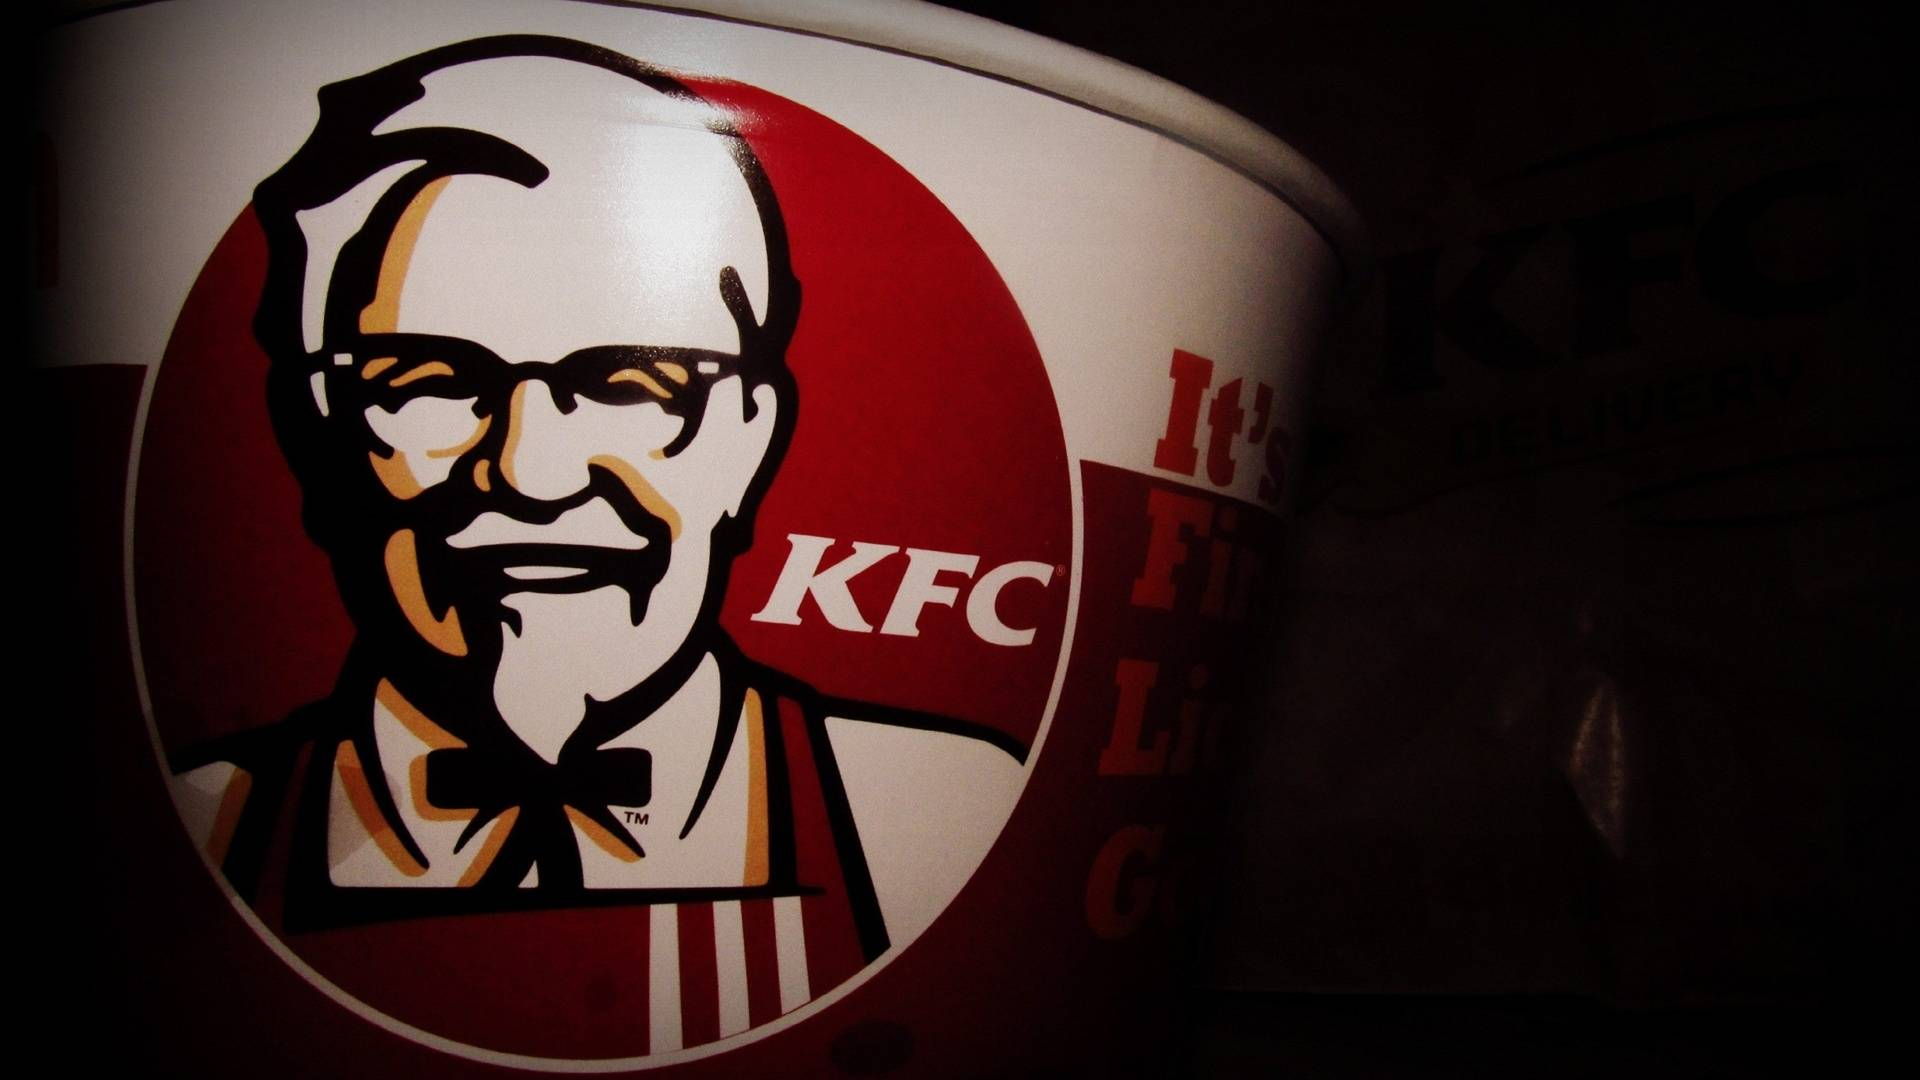 kfc logo desktop wallpaper 62691